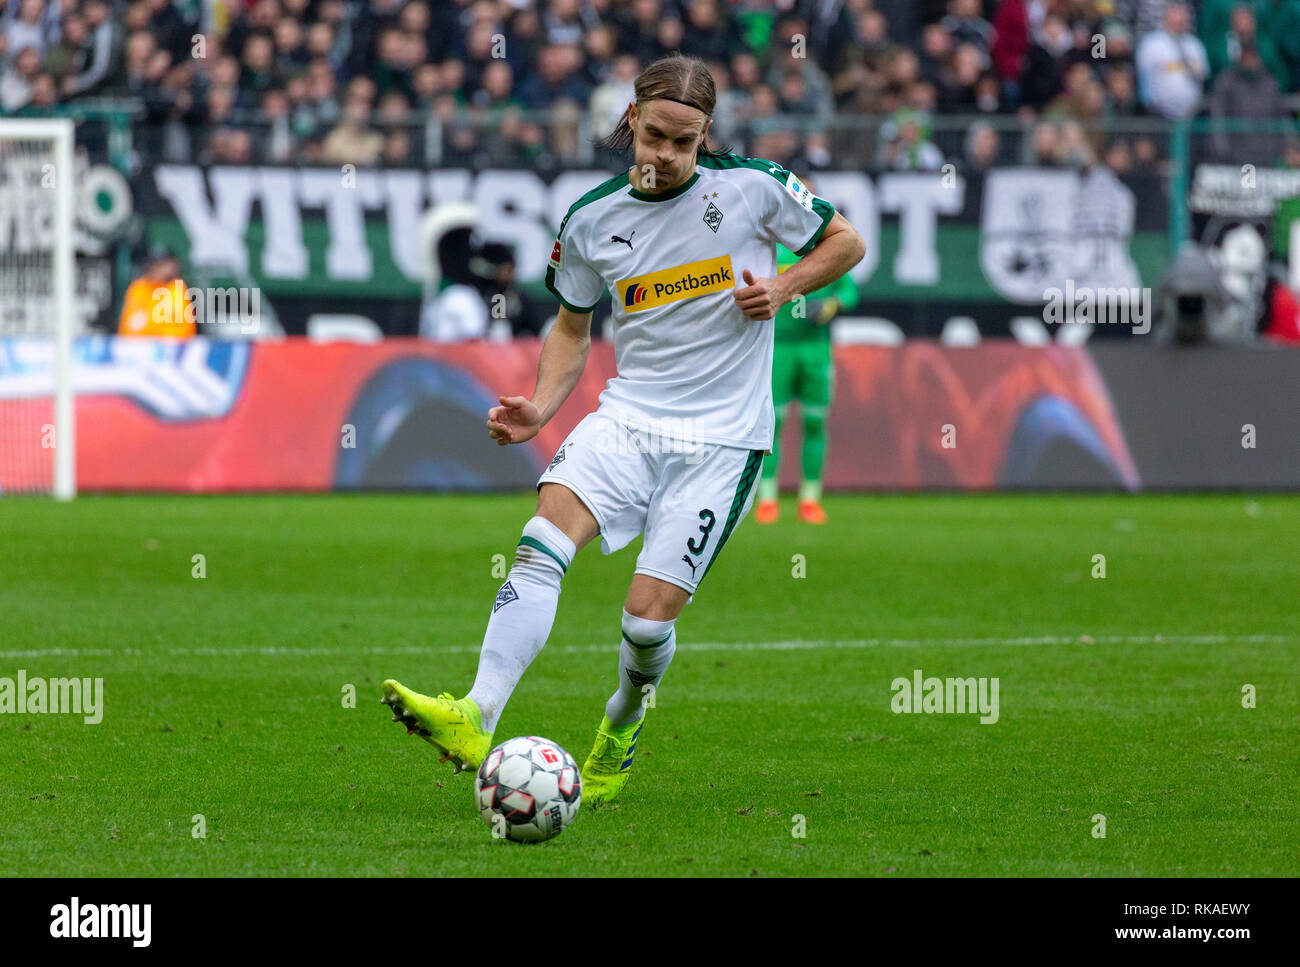 sports, football, Bundesliga, 2018/2019, Borussia Moenchengladbach vs Hertha BSC Berlin 0-3, Stadium Borussia Park, scene of the match, Michael Lang (MG) in ball possession, DFL REGULATIONS PROHIBIT ANY USE OF PHOTOGRAPHS AS IMAGE SEQUENCES AND/OR QUASI-VIDEO - Stock Image